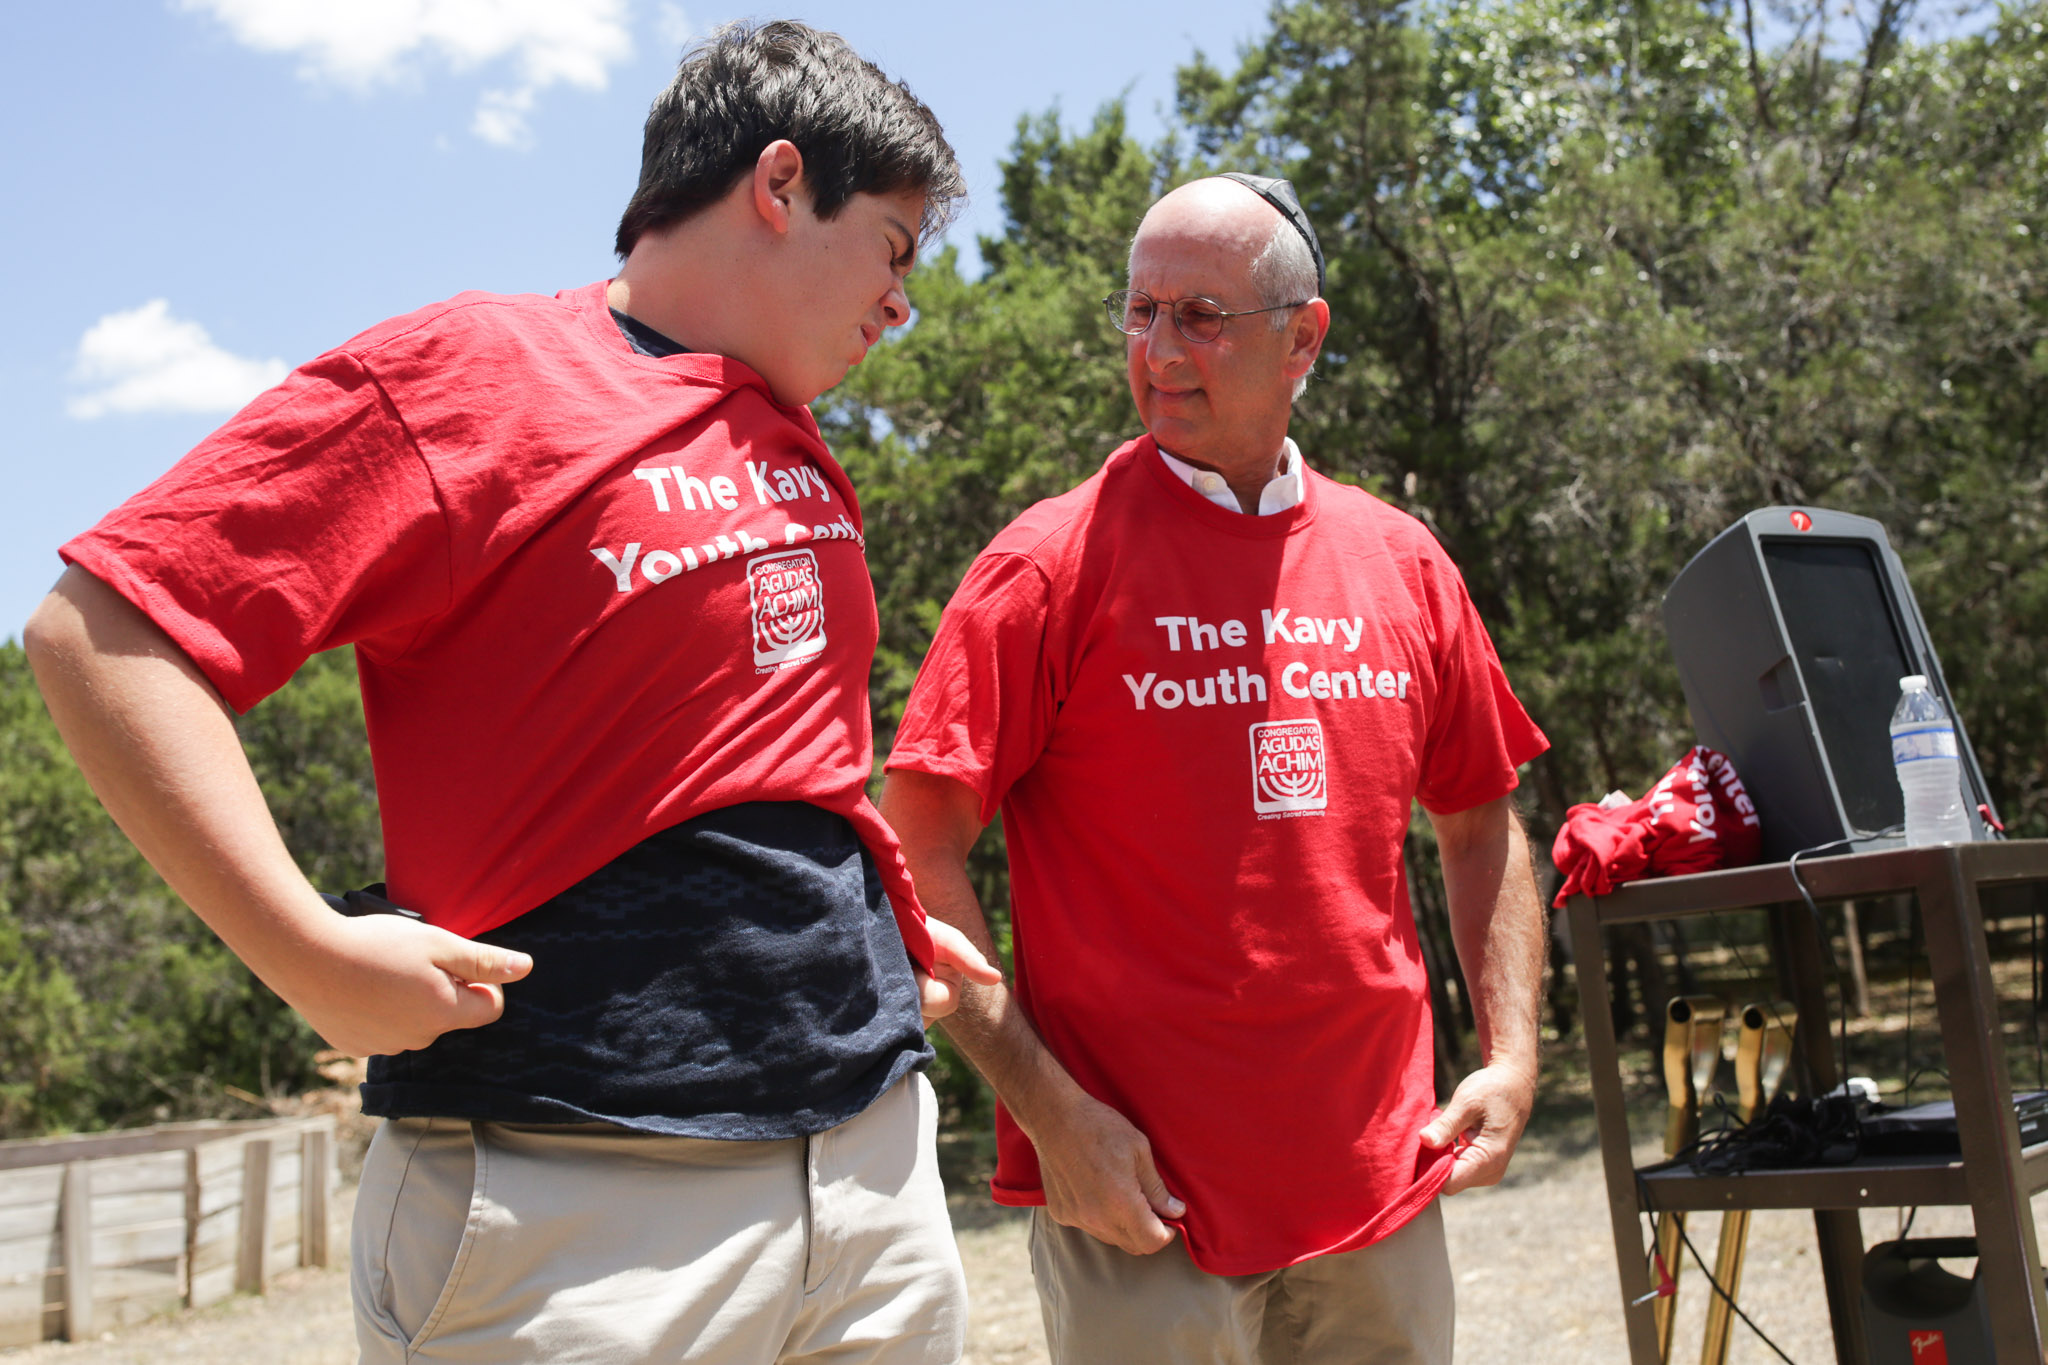 Will (left) and Jeff Kavy put on shirts honoring the groundbreaking of the Kavy Youth Center.